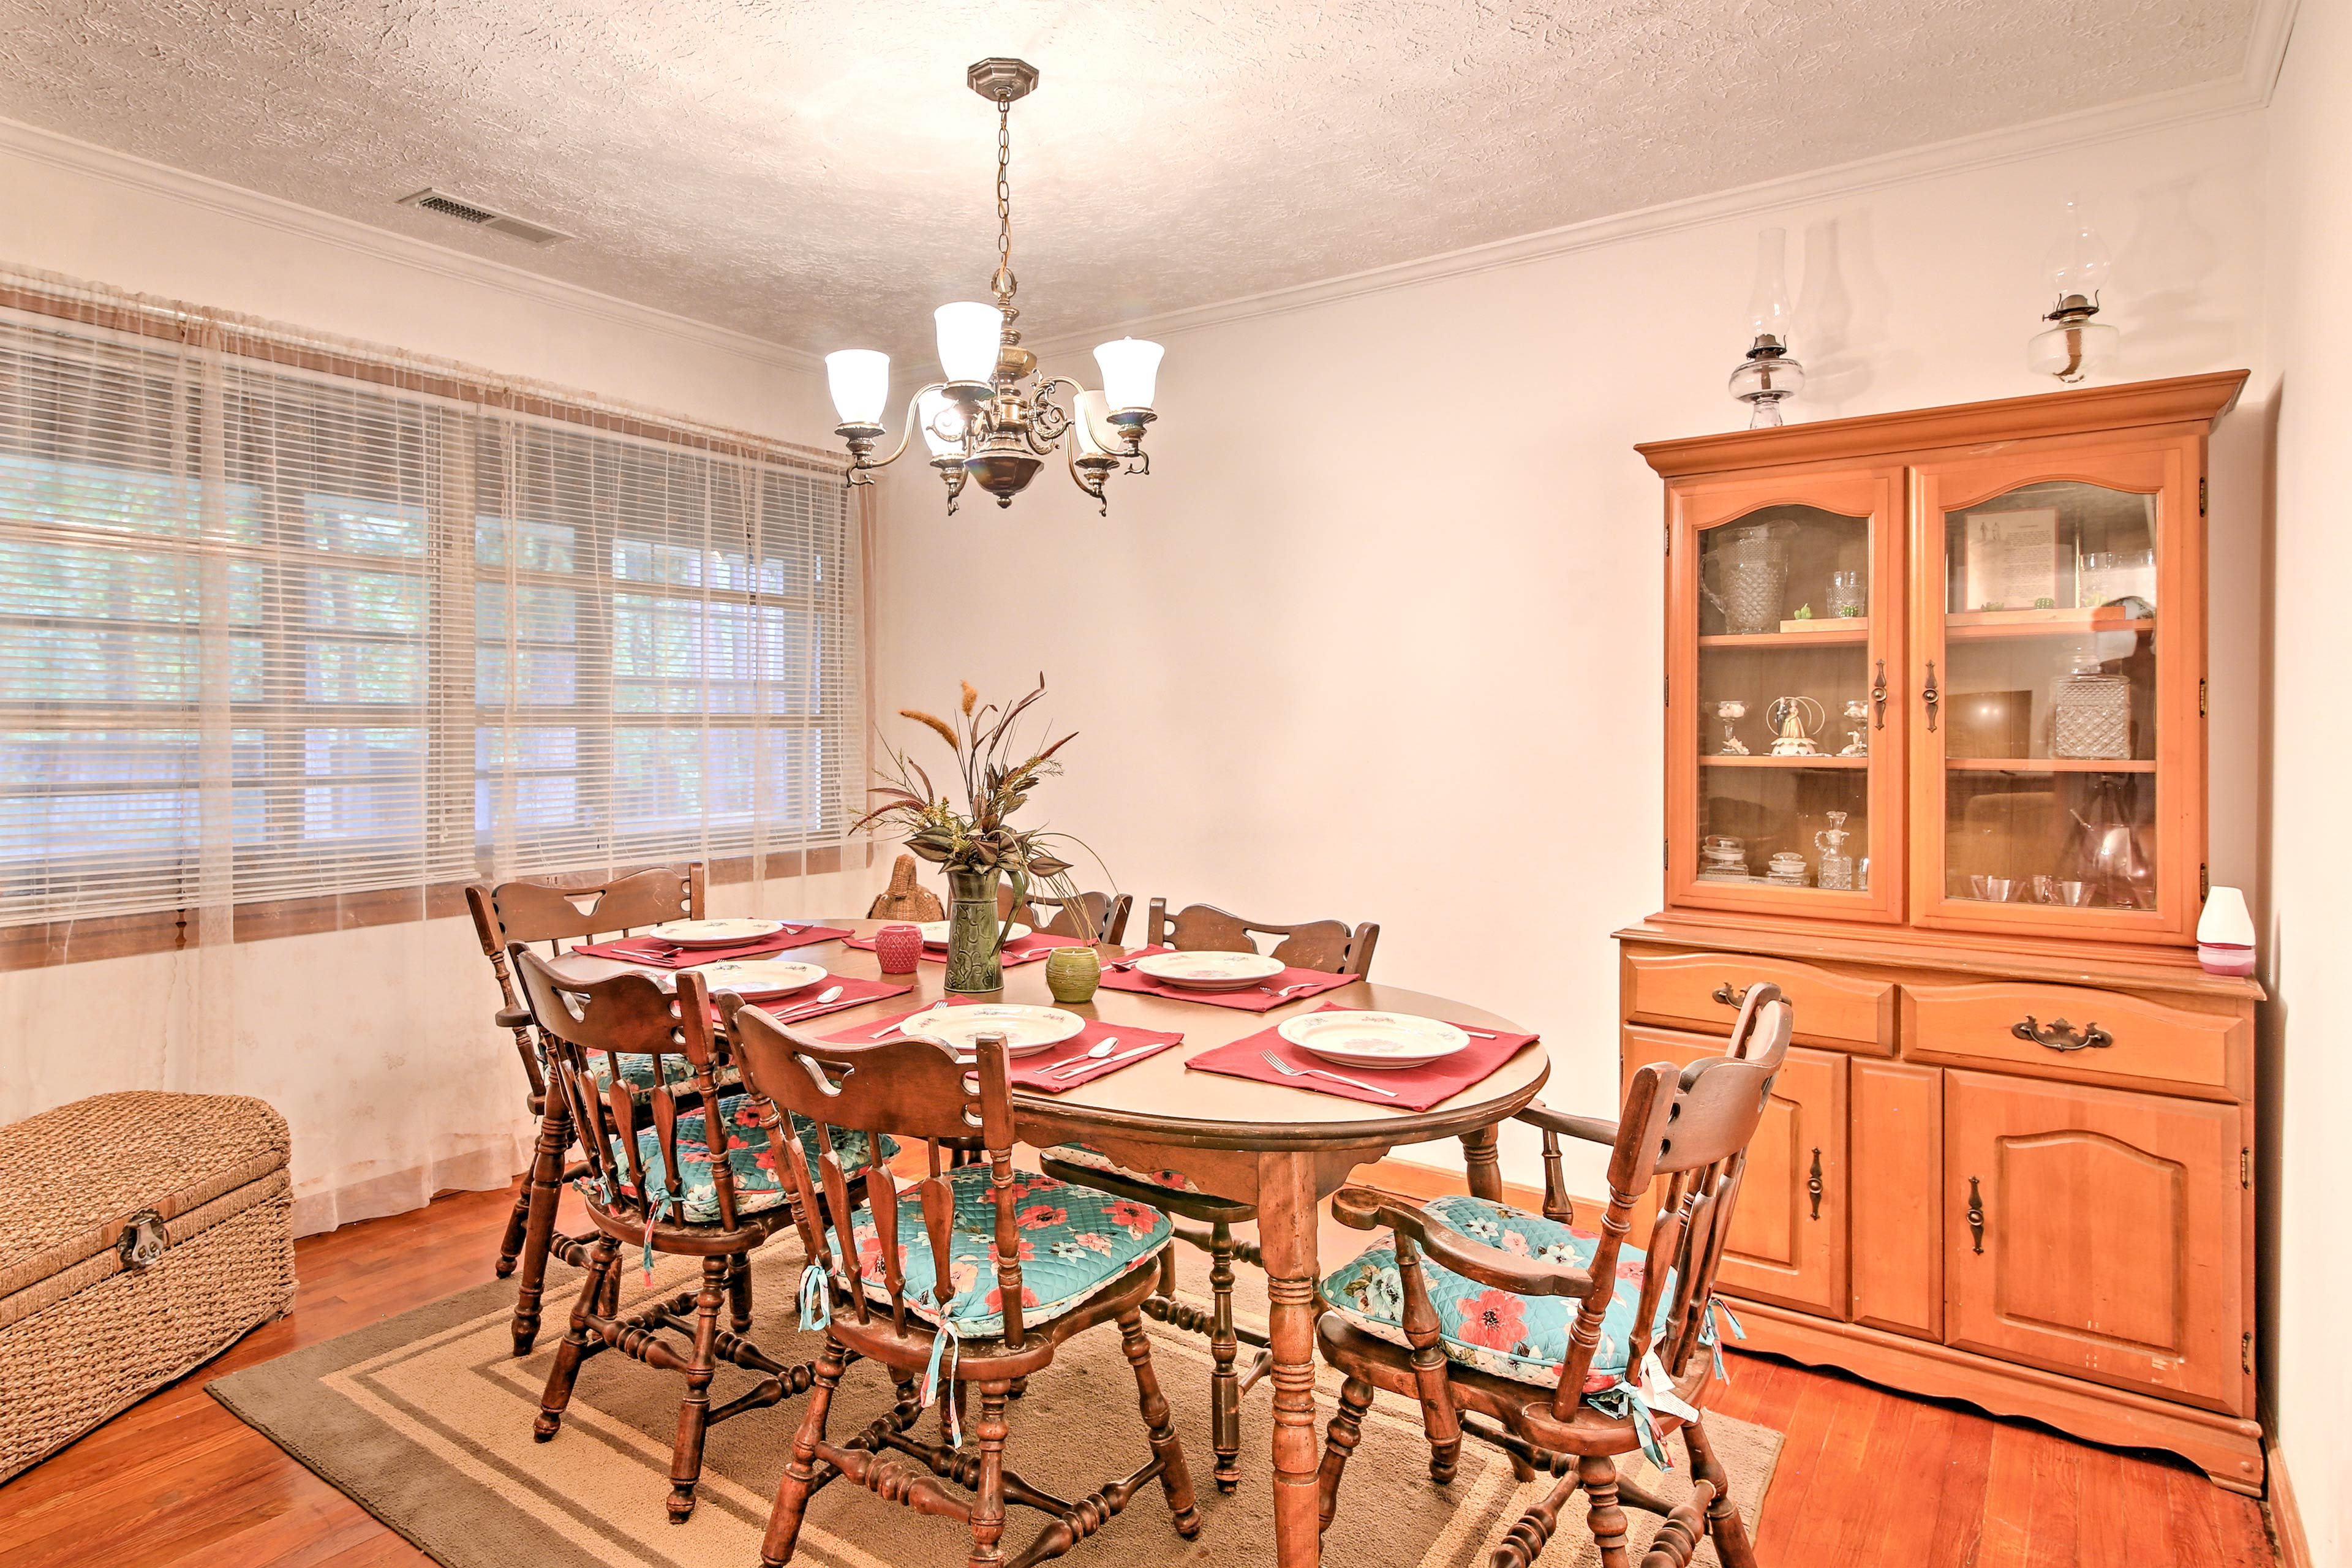 Dine together at this 6-person table, with additional seating in the kitchen.